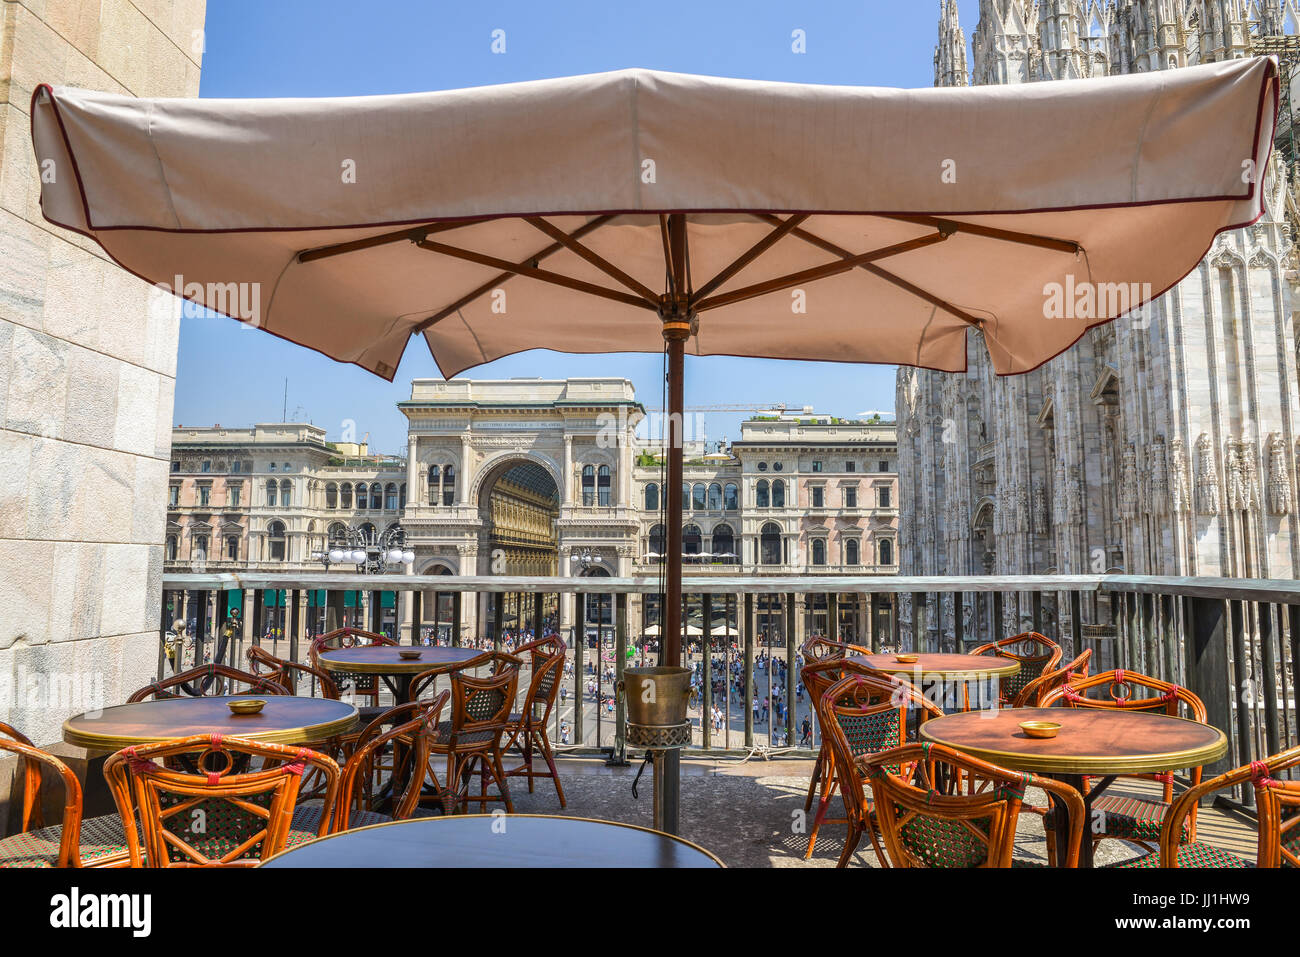 A drinks balcony overlooking Piazza Duomo in Milan, Italy on a summer day Stock Photo